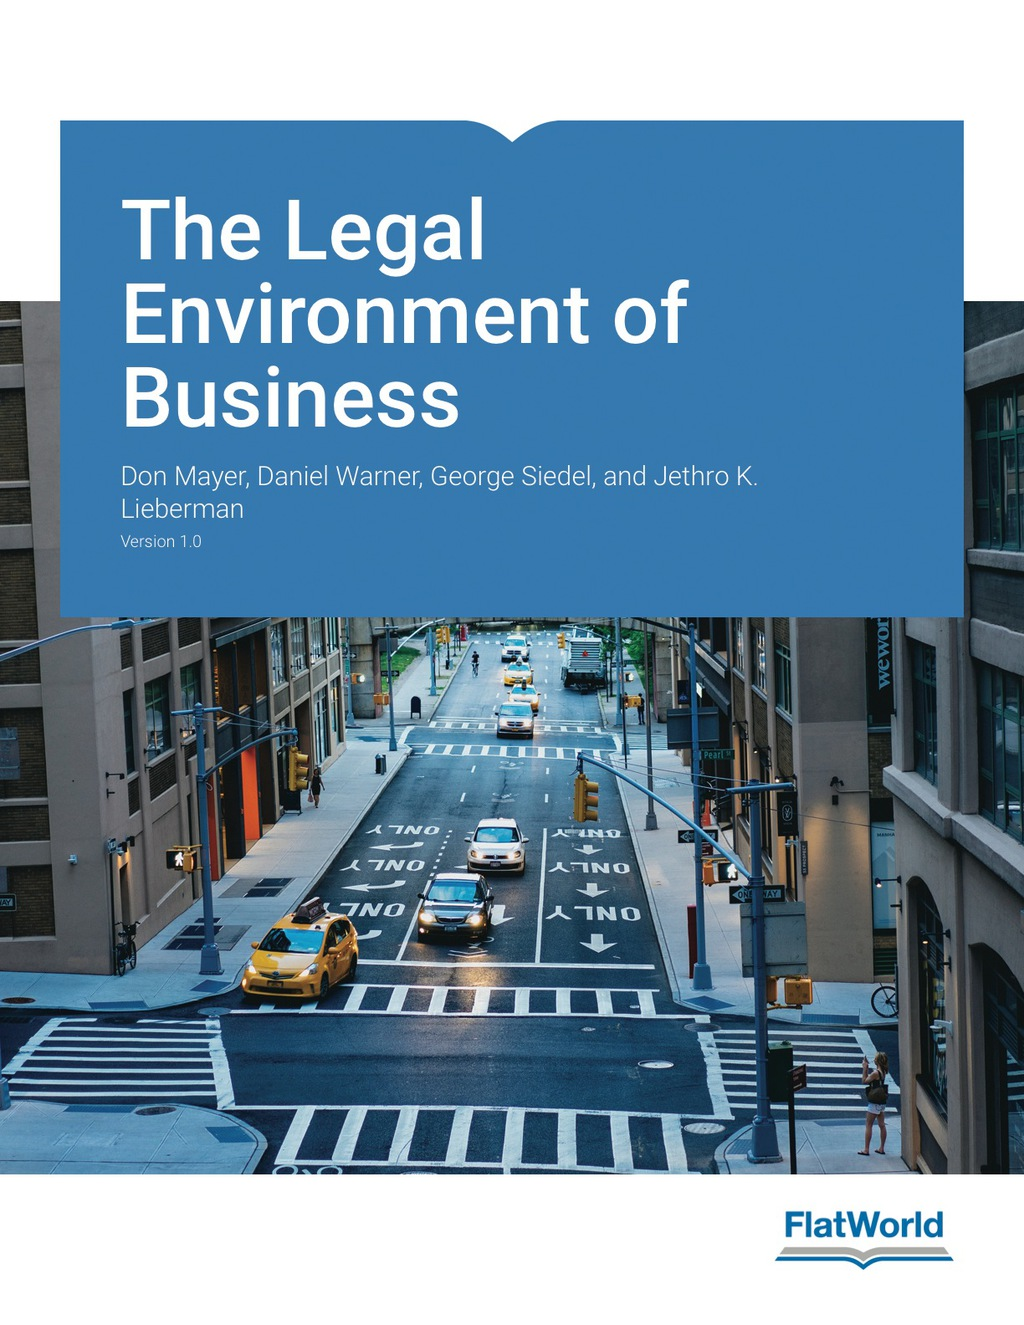 Compare legal environment ebook ebooks miscellaneous prices and buy the legal environment of business ebook ebooks fandeluxe Gallery